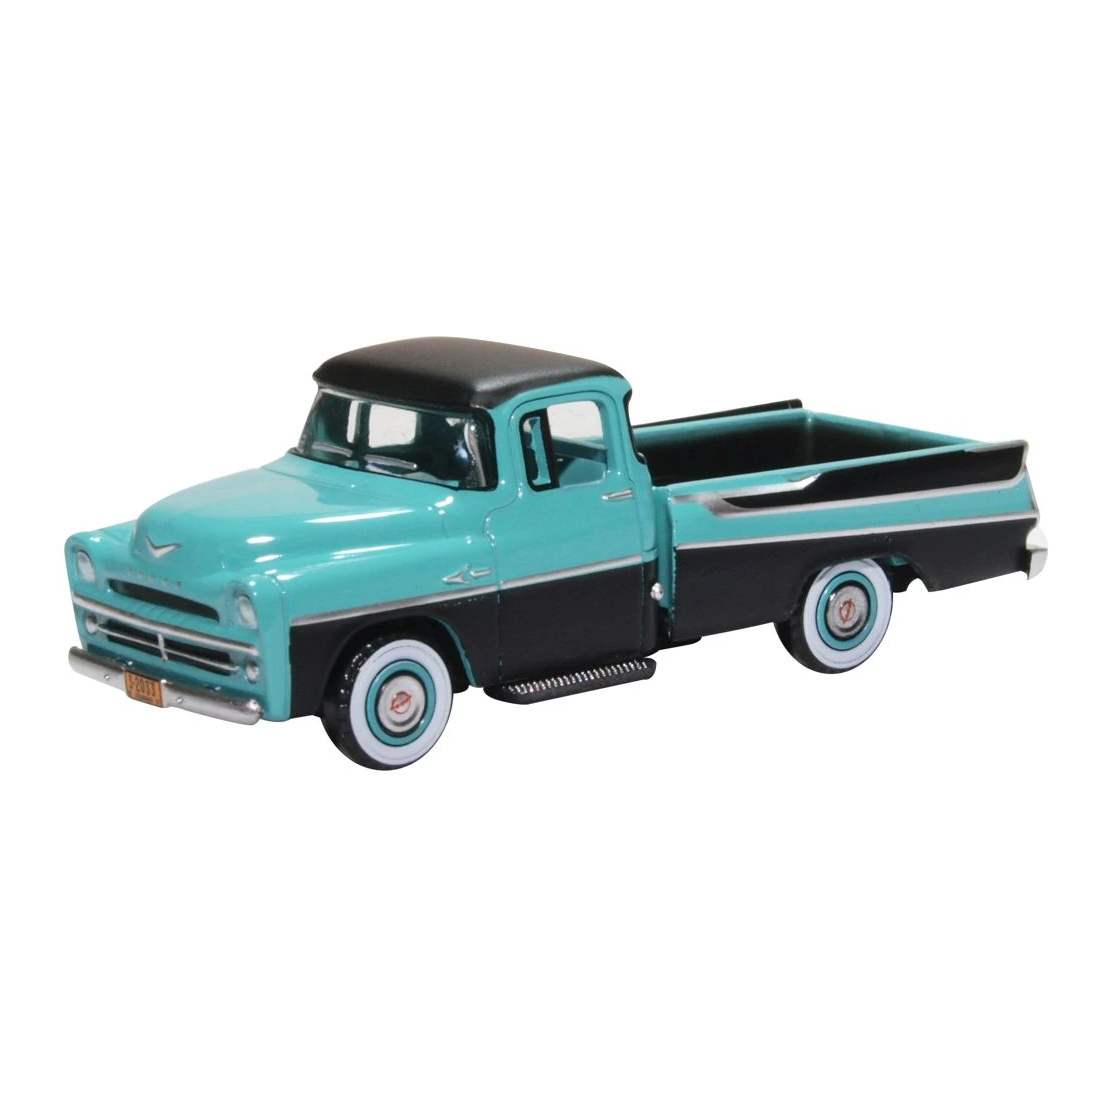 HO Scale: 1957 Dodge D100 Sweptside Pickup Truck - Turquoise & Jewel Black